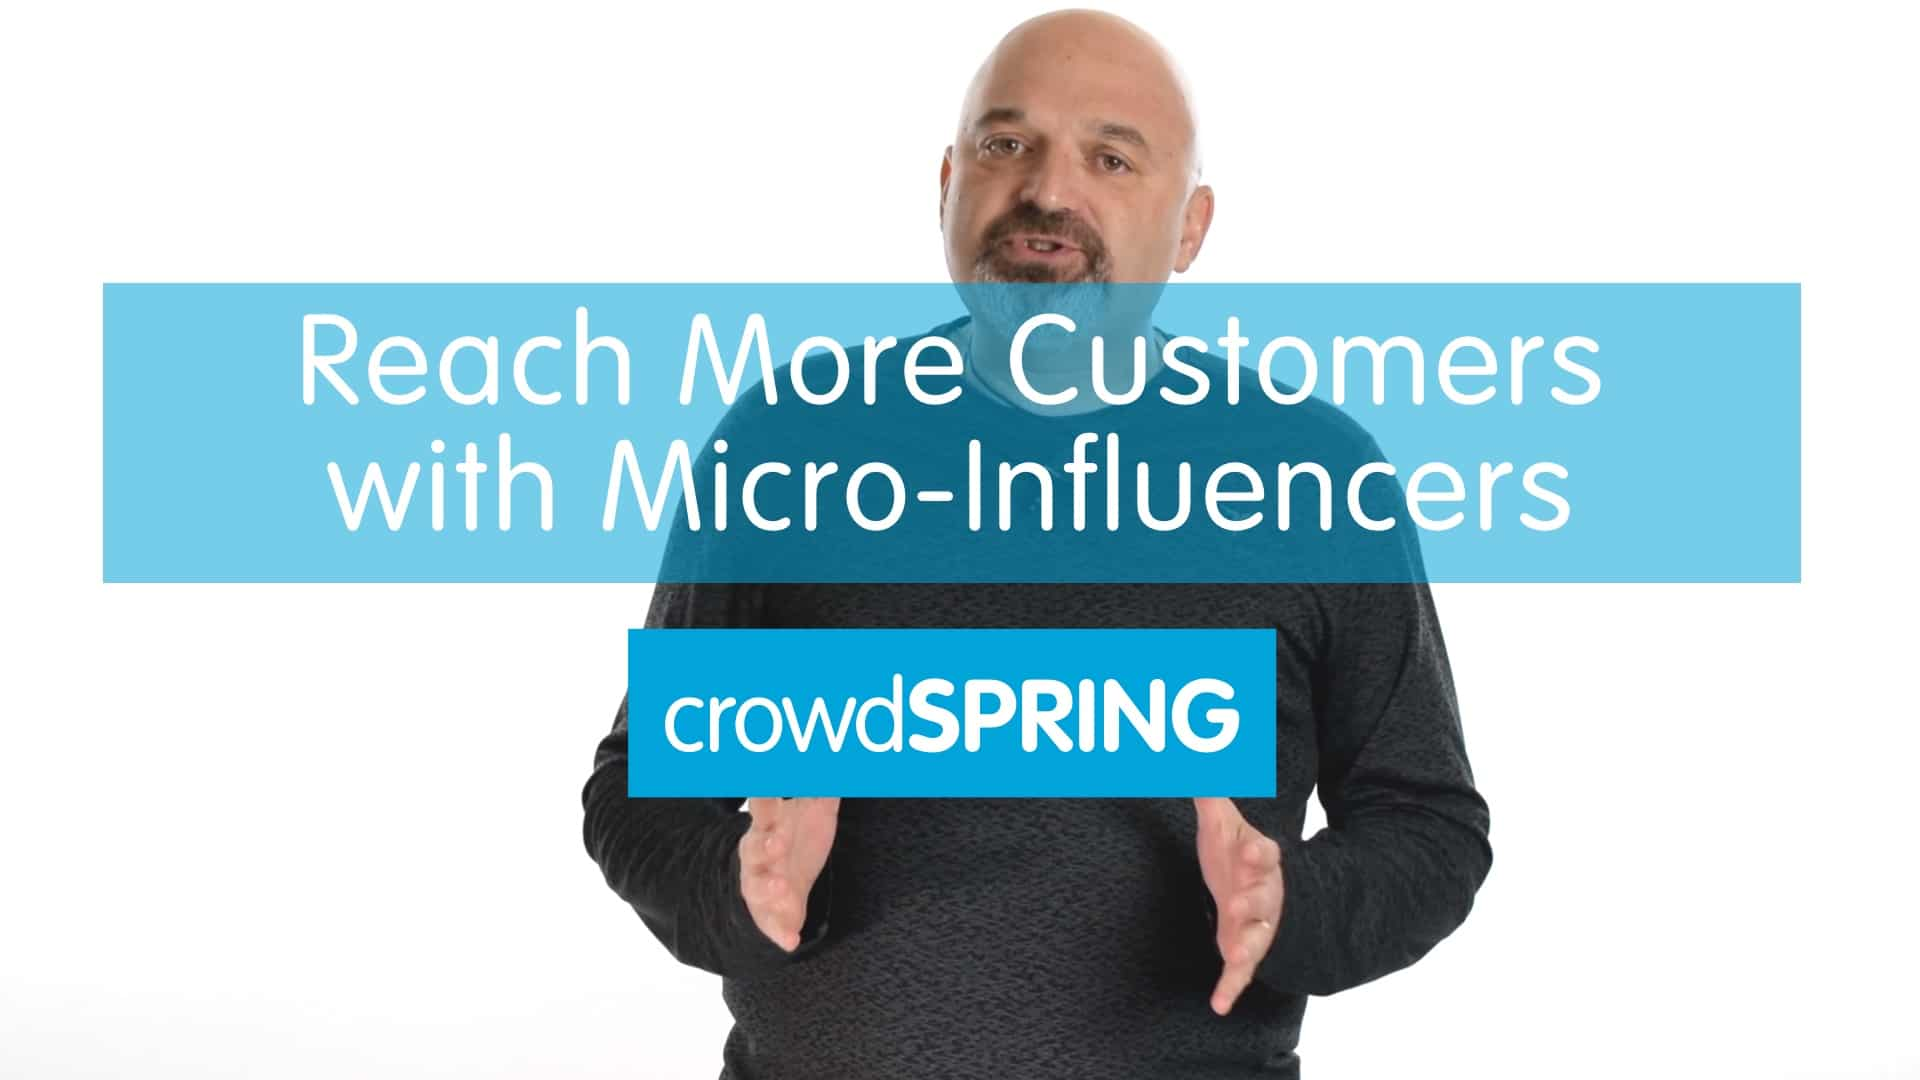 Reach More Customers On Social Media with Micro-Influencers